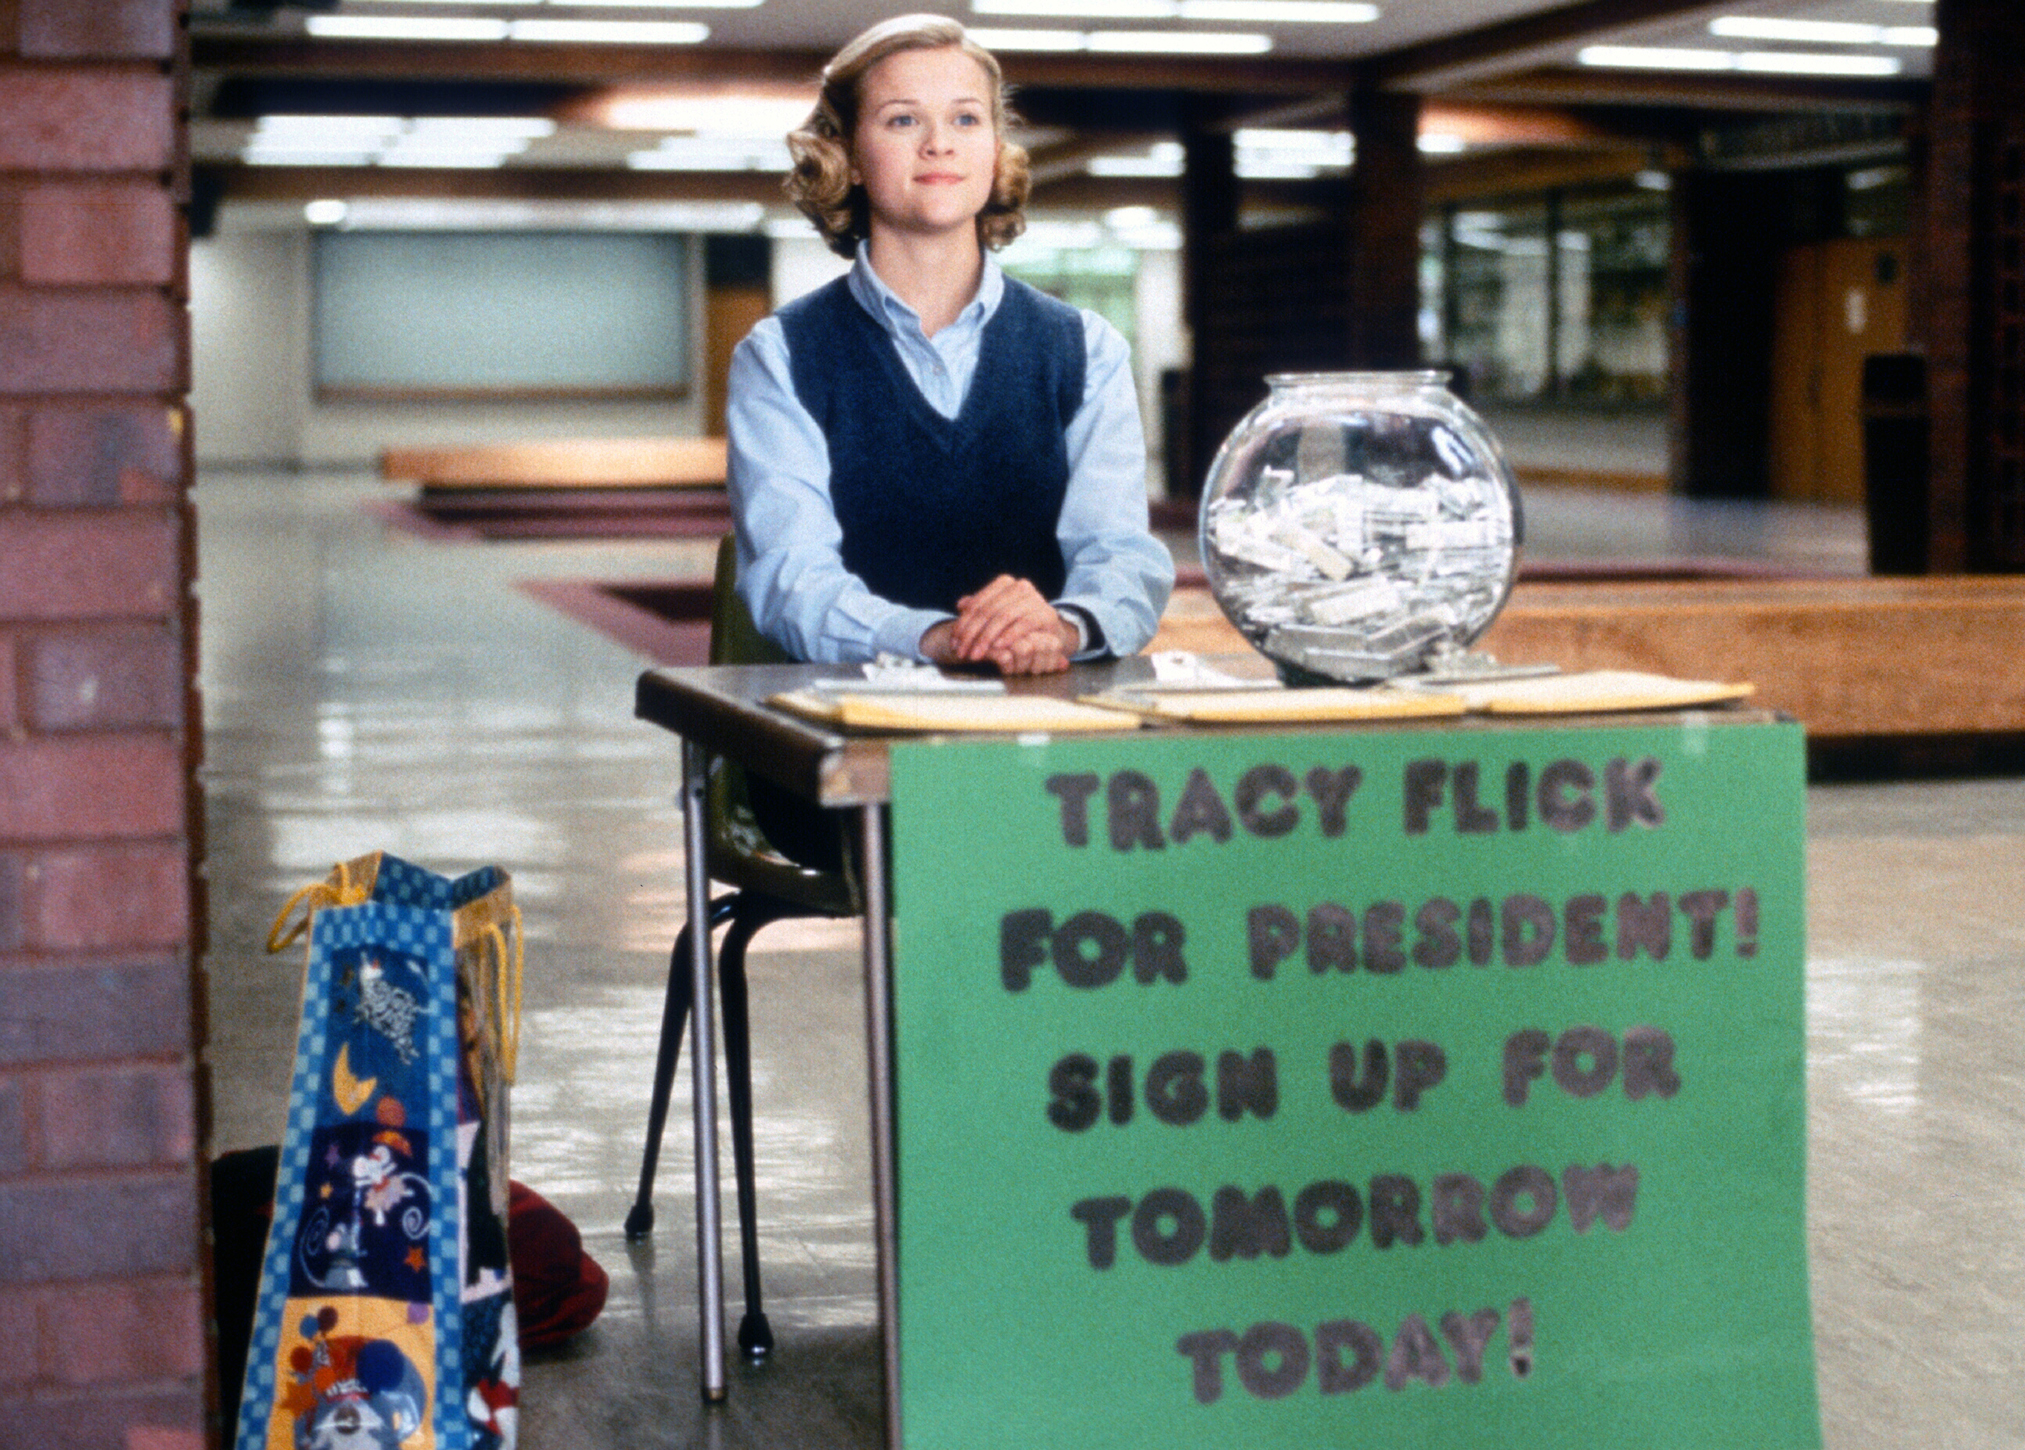 Election (1999)Directed by Alexander PayneShown: Reese Witherspoon (as Tracy Enid Flick)